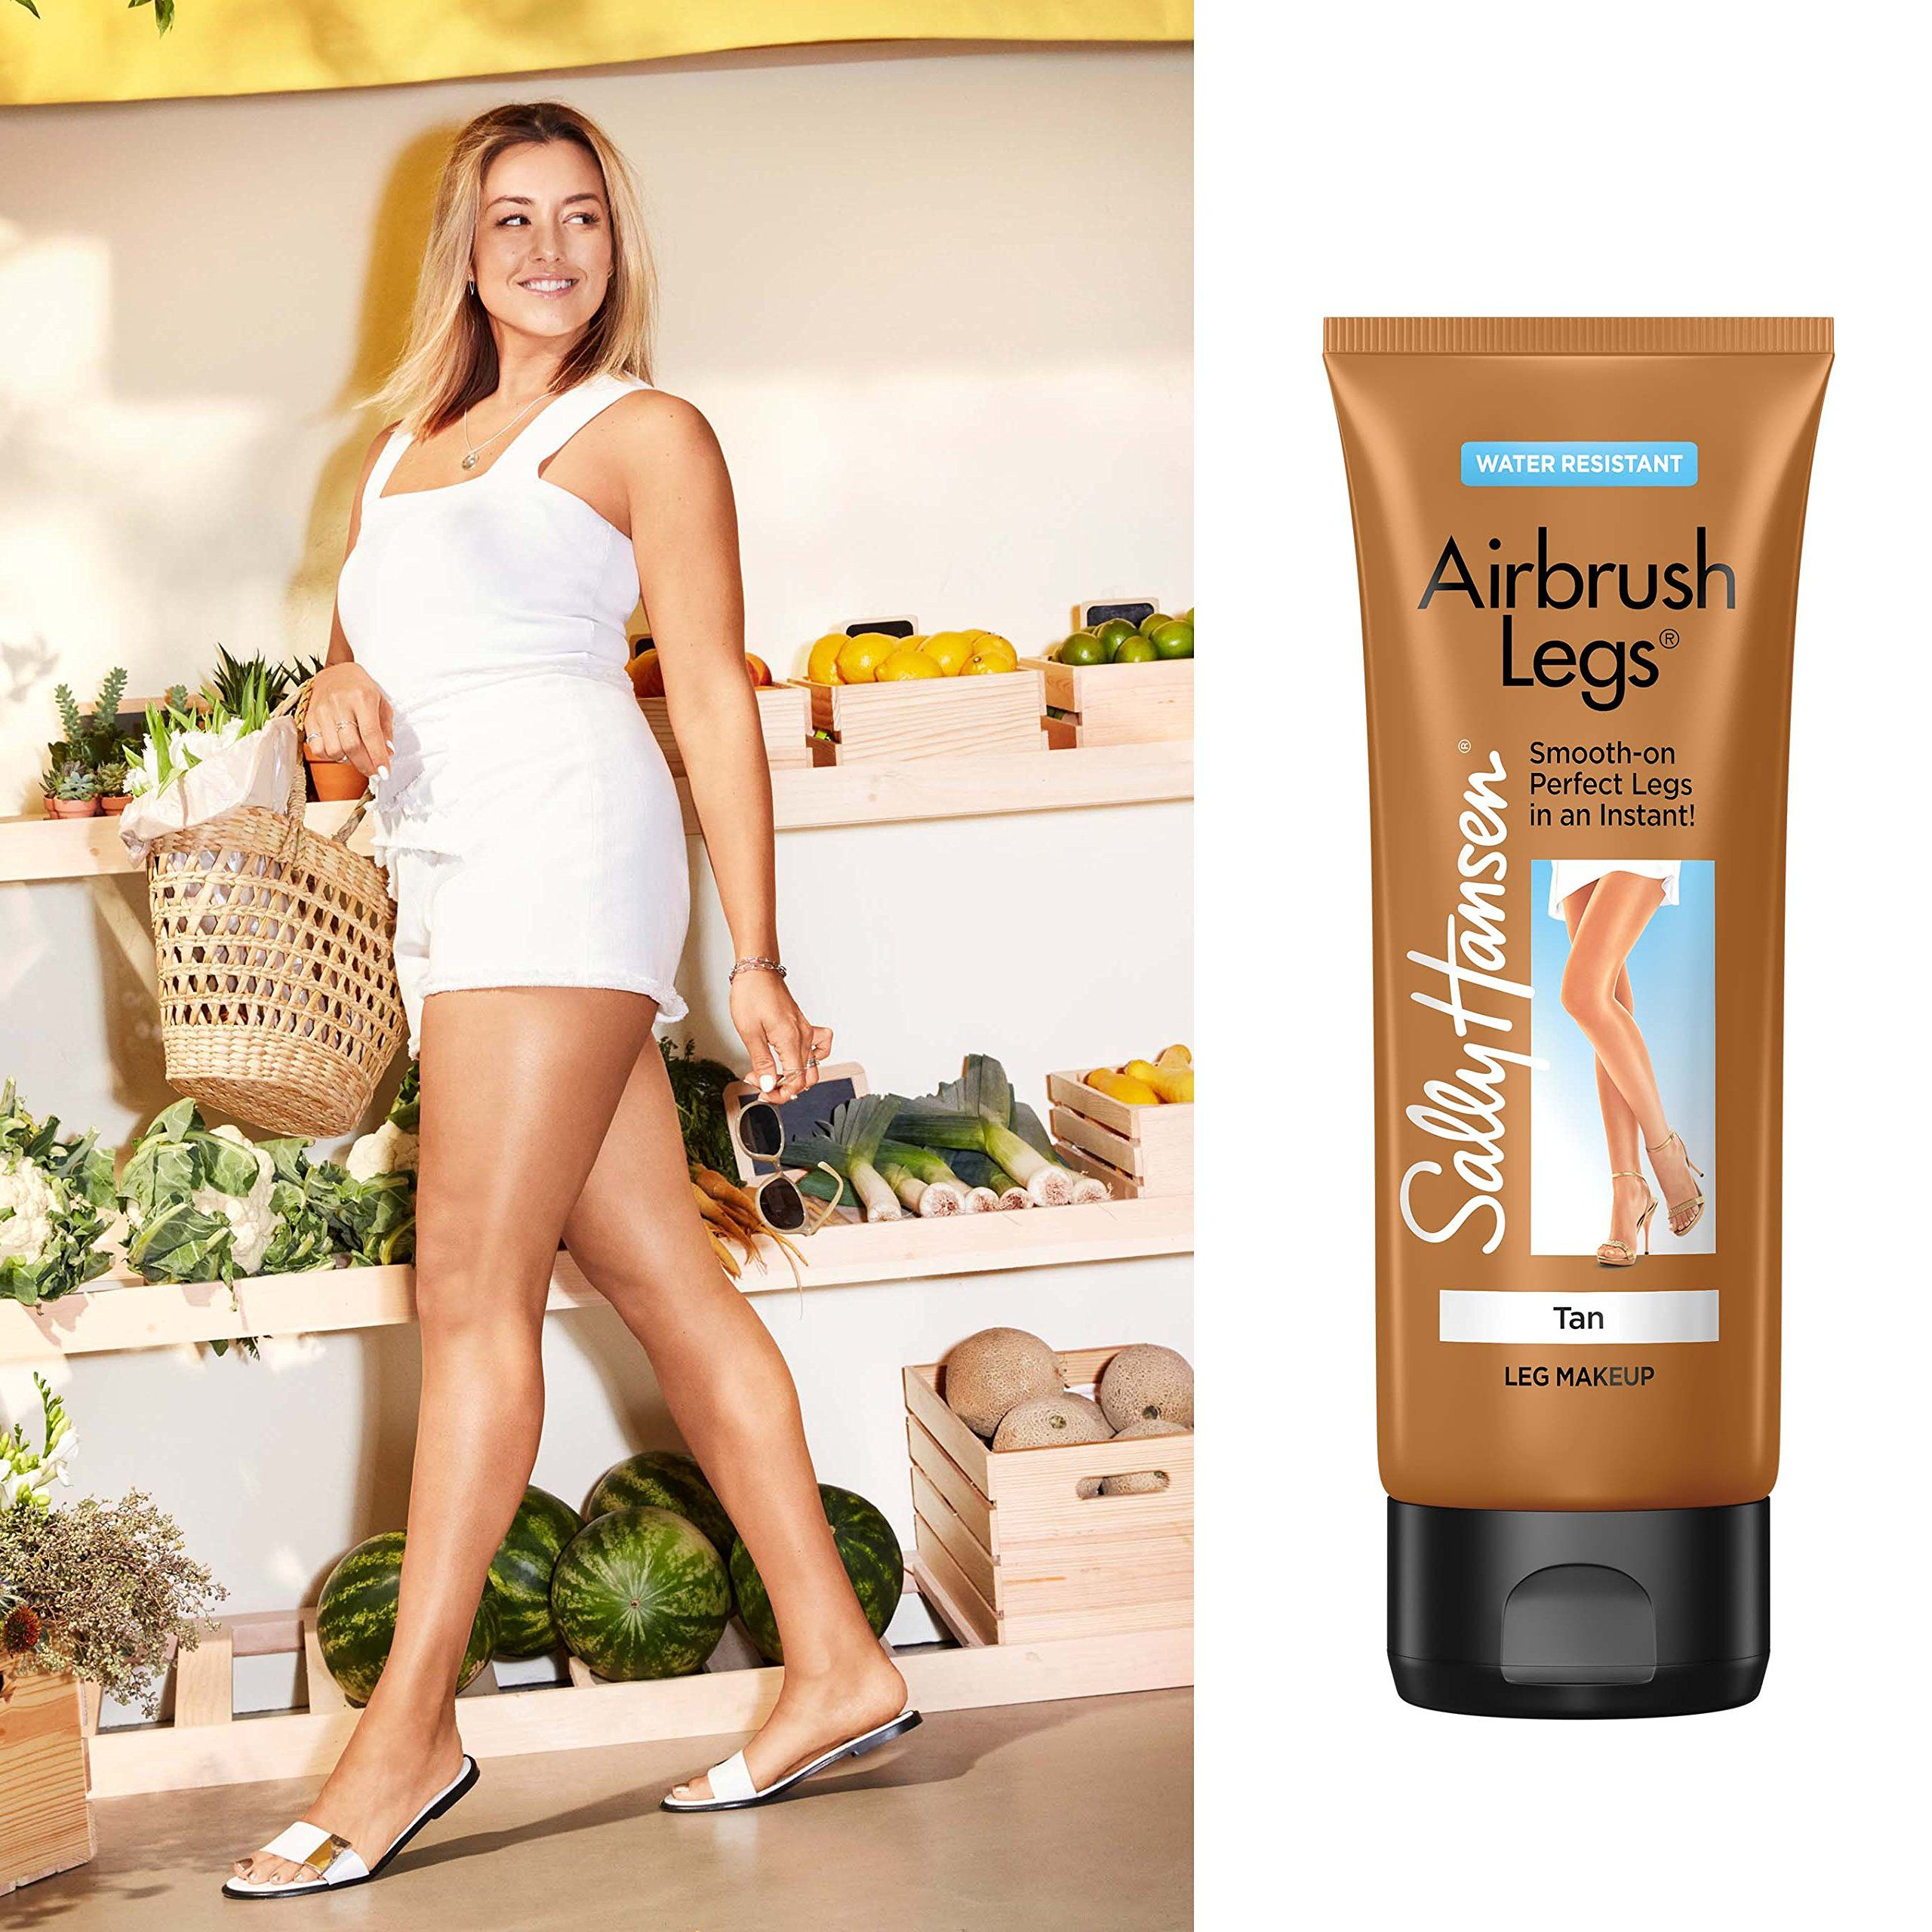 Sally Hansen Airbrush Legs Tan/Bronze Leg Makeup 4 oz